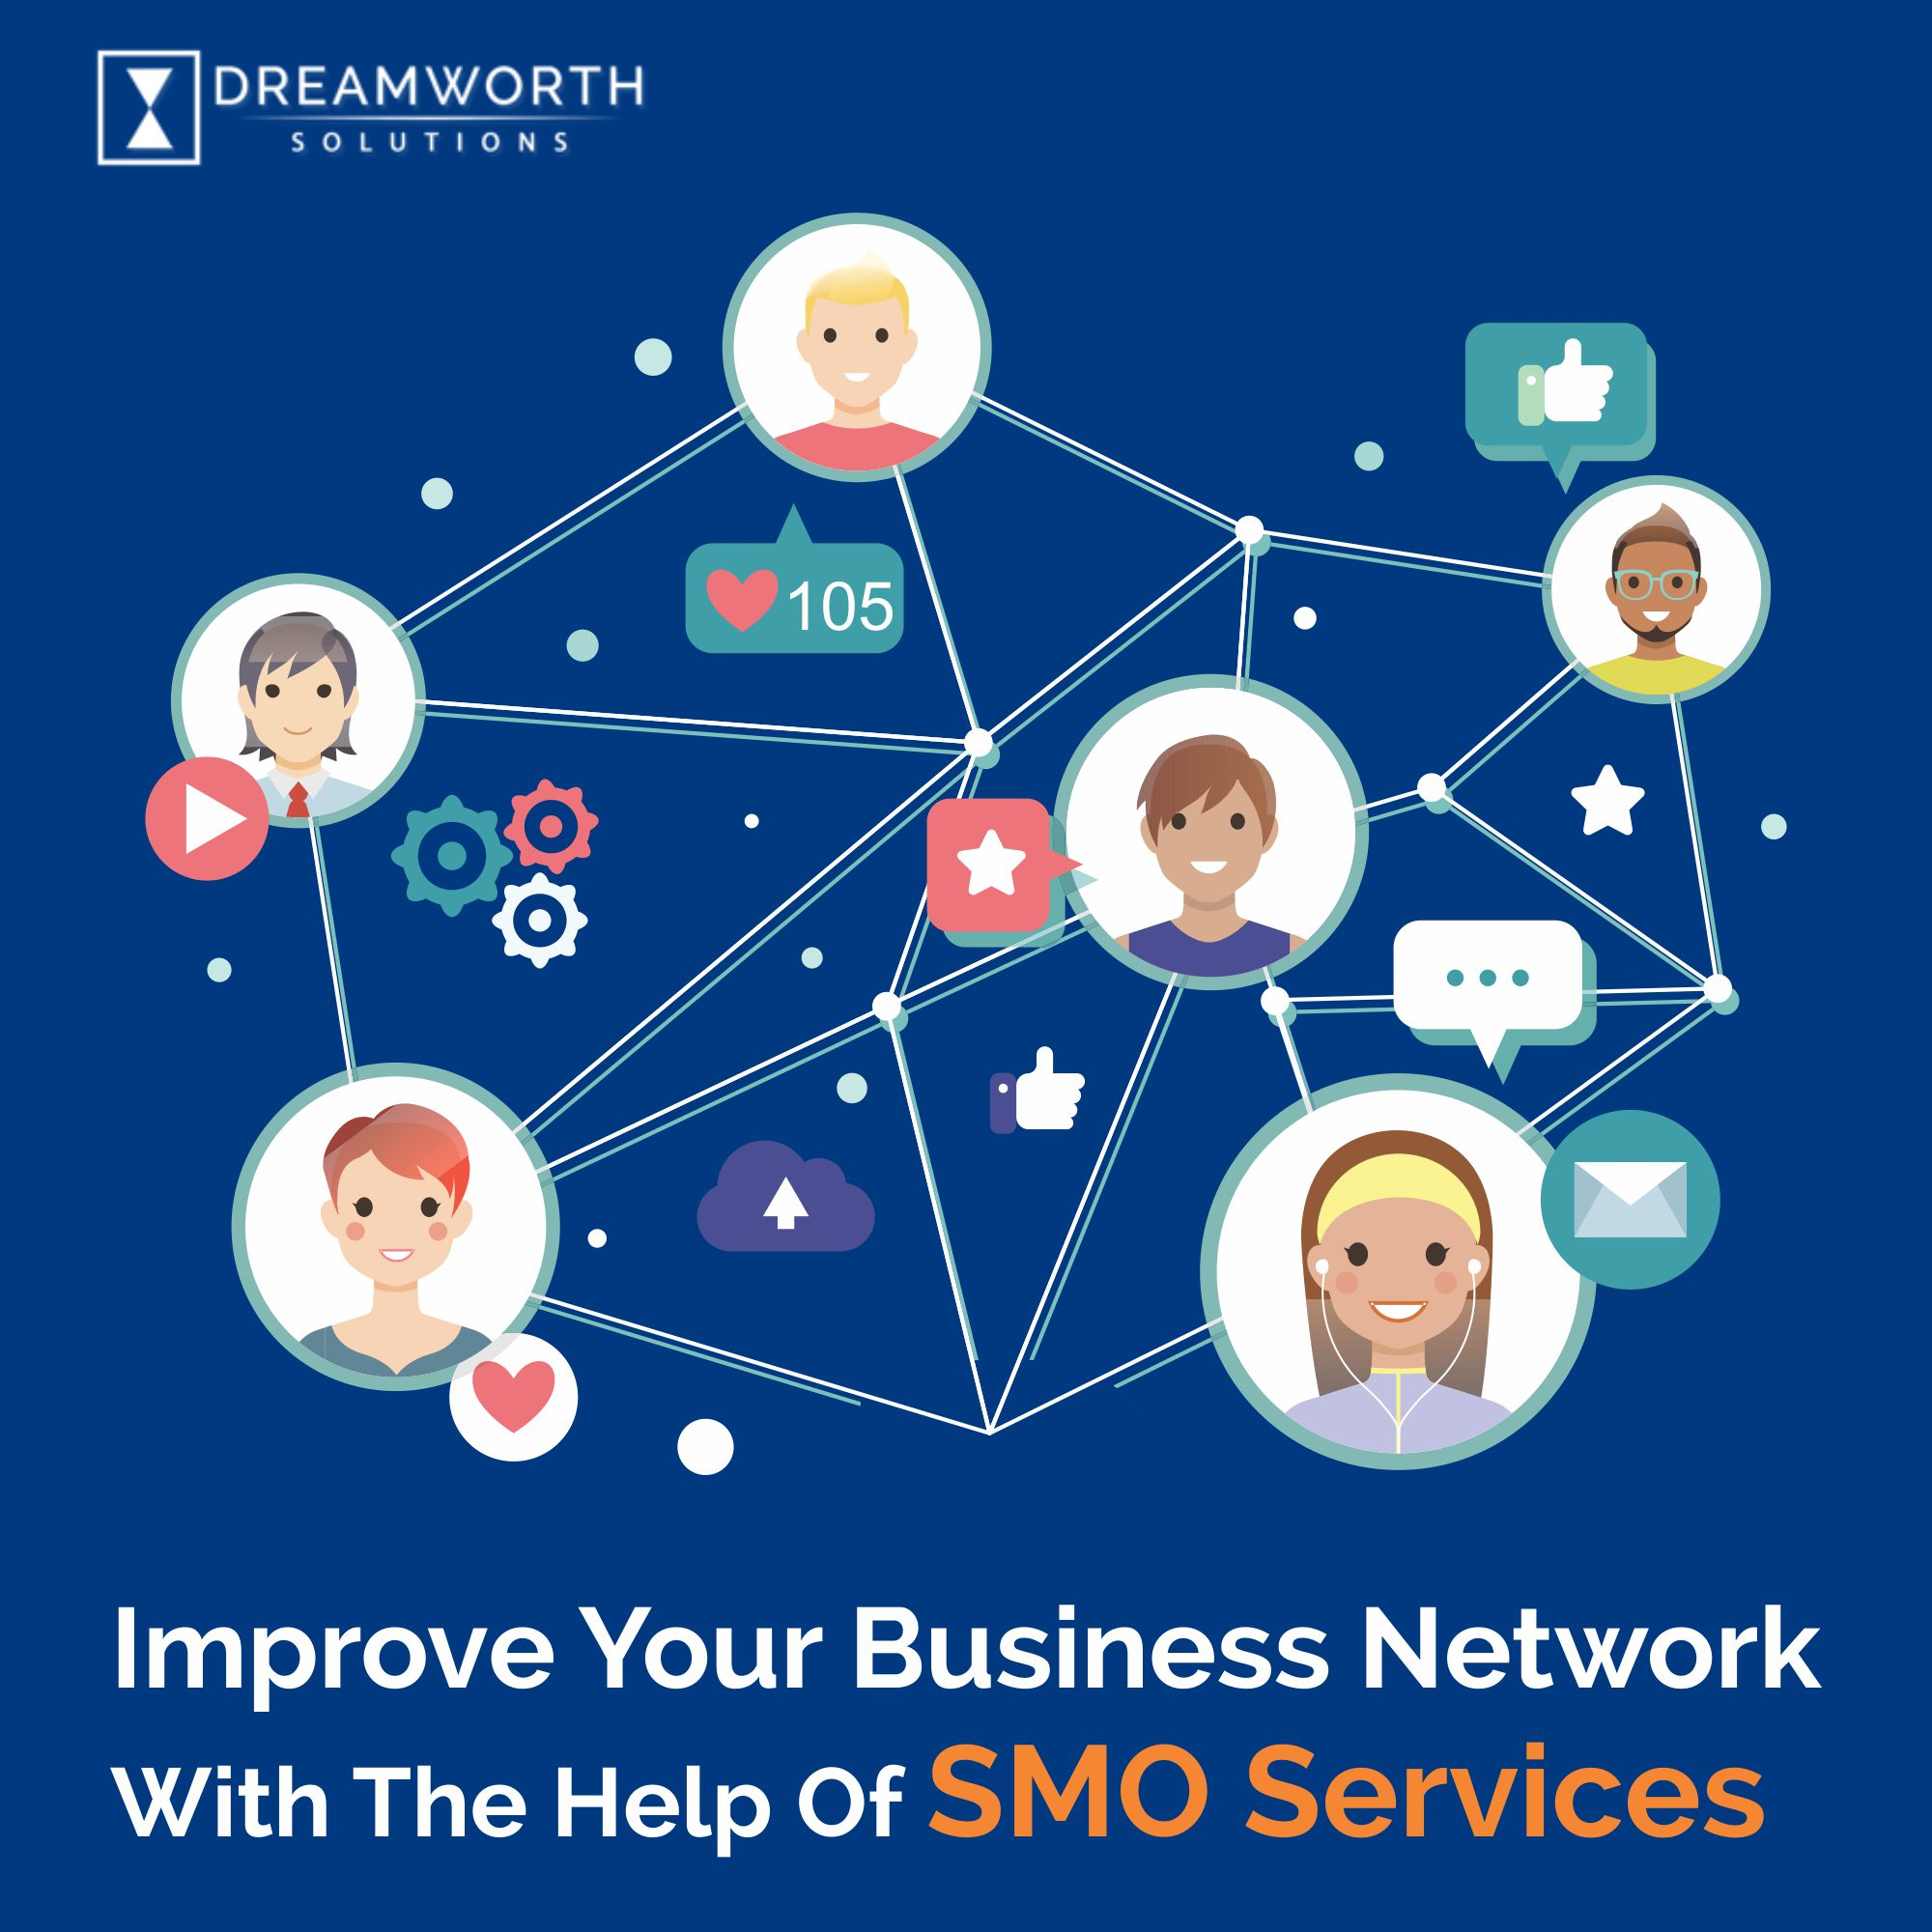 DreamWorth Solutions is one of the famous SMO Company in Pune